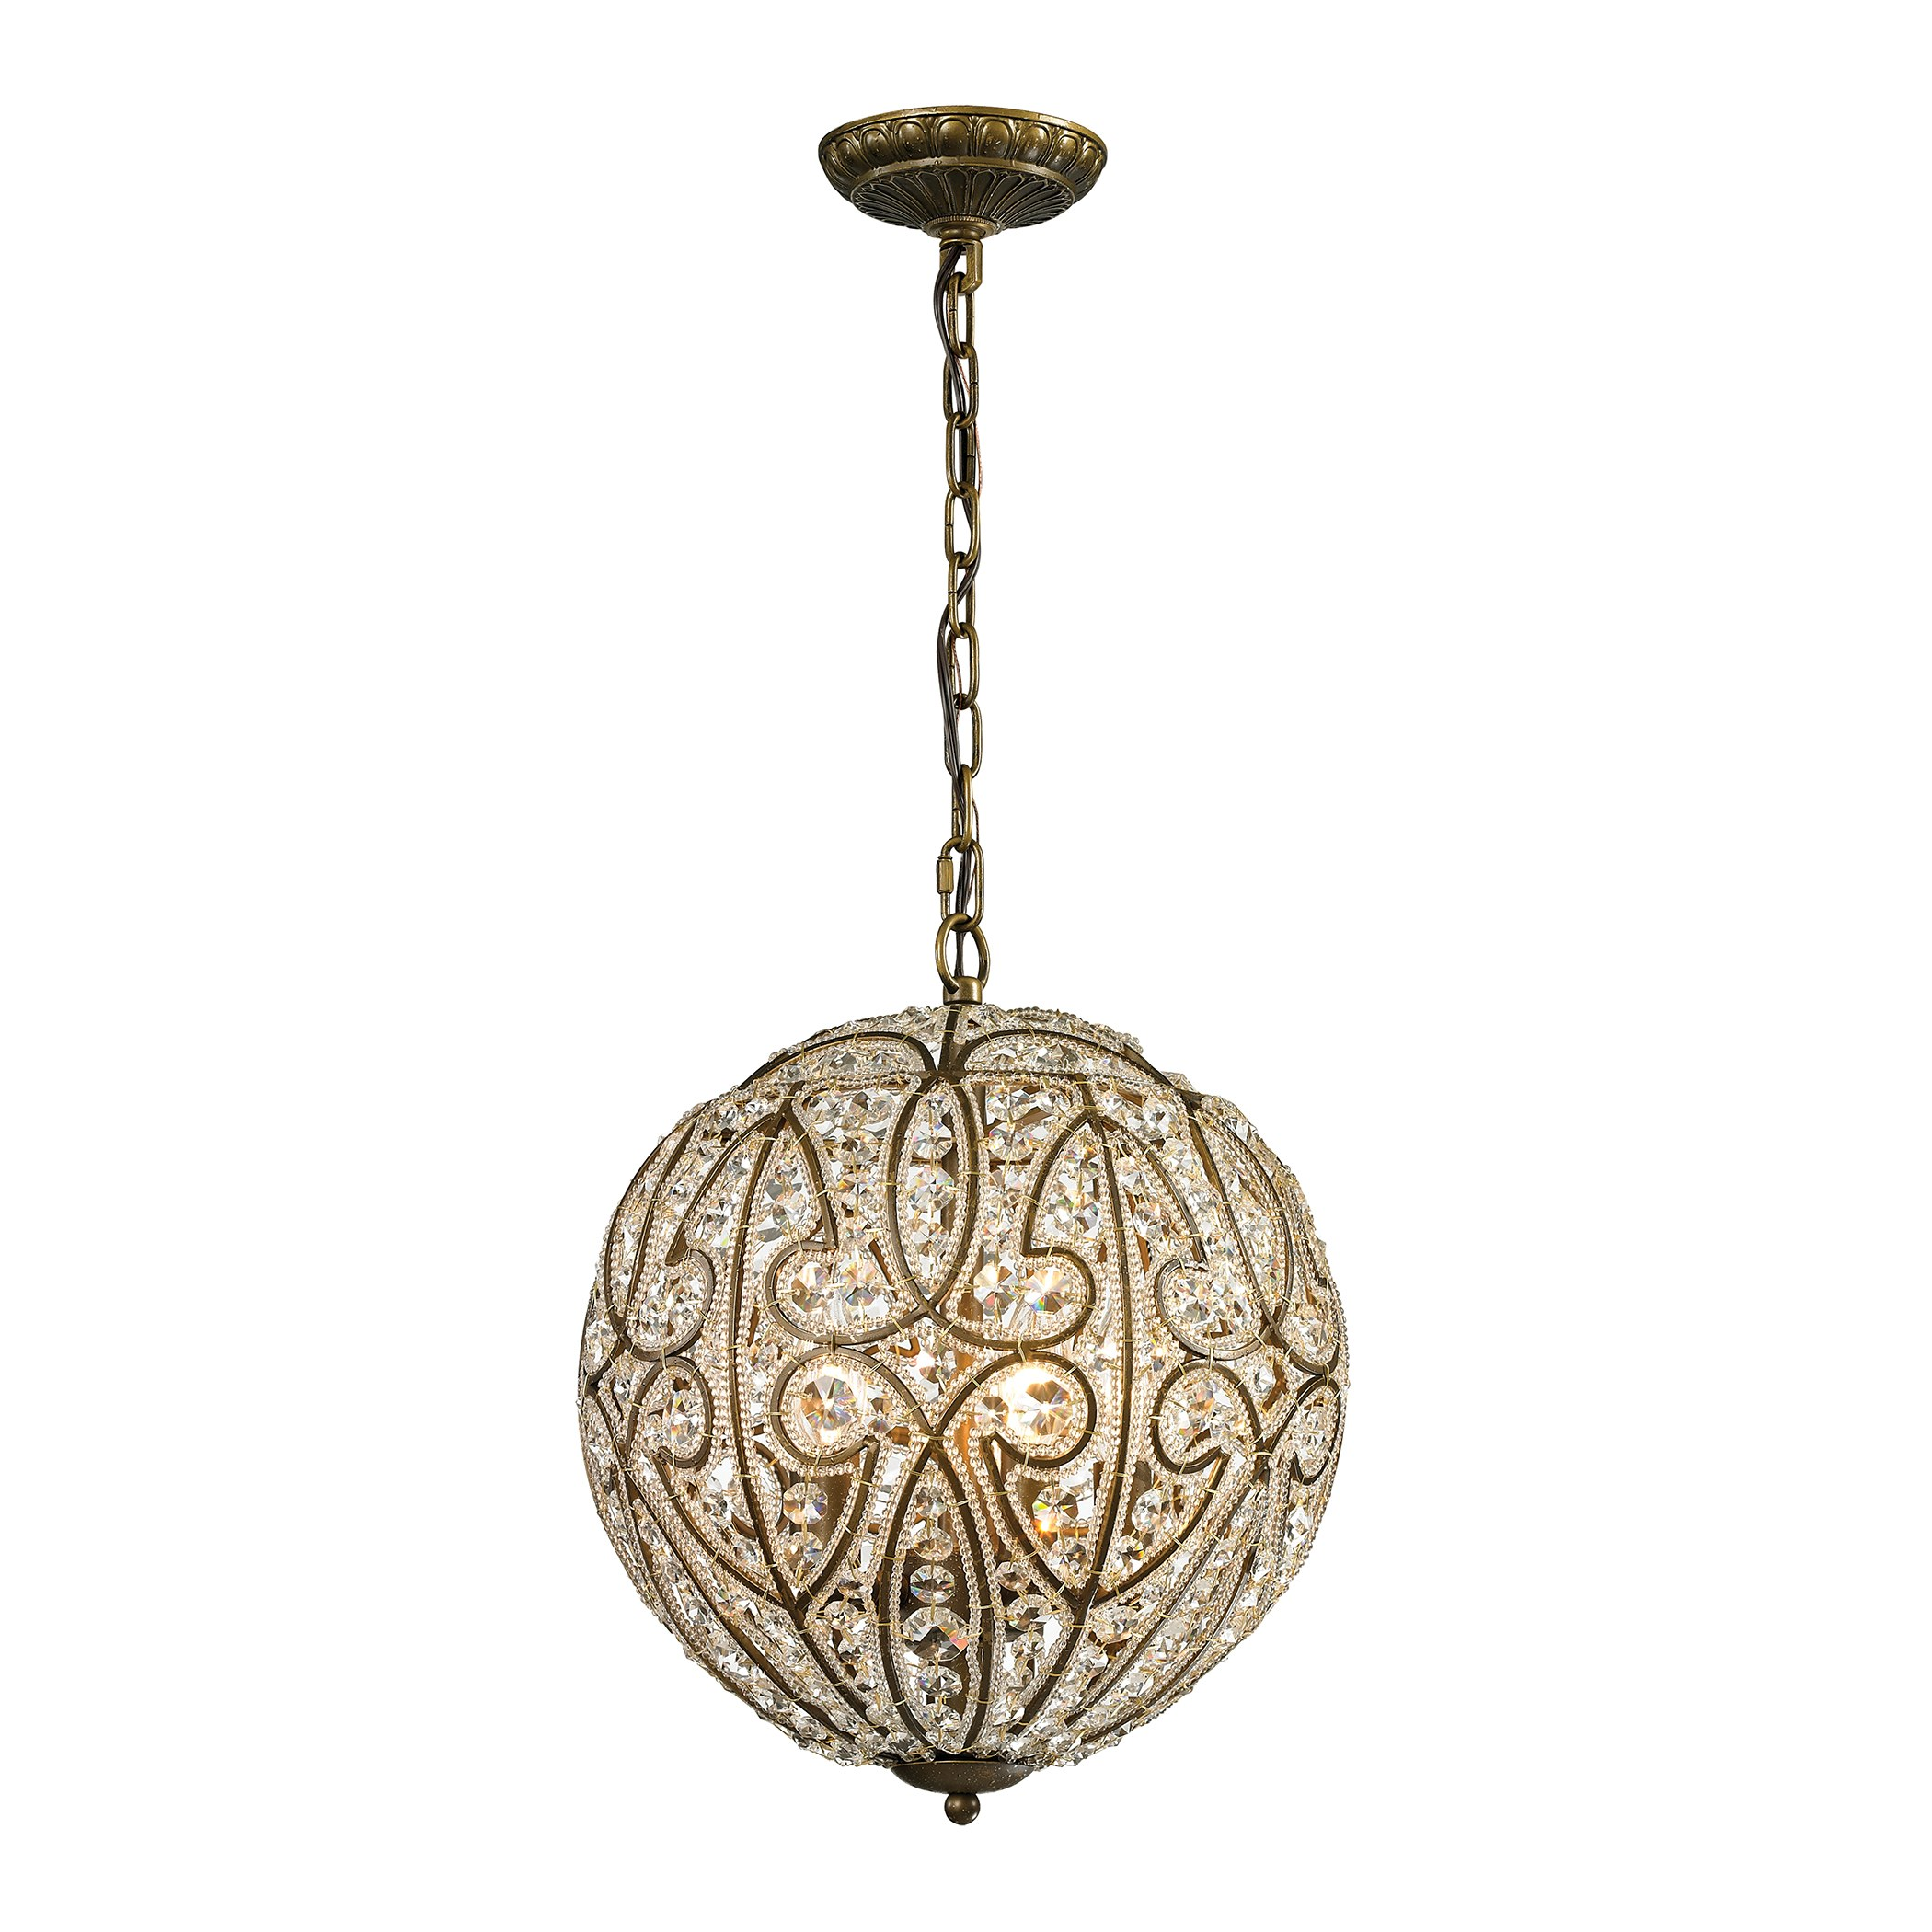 elizabethan existing collection 6 light pendant in